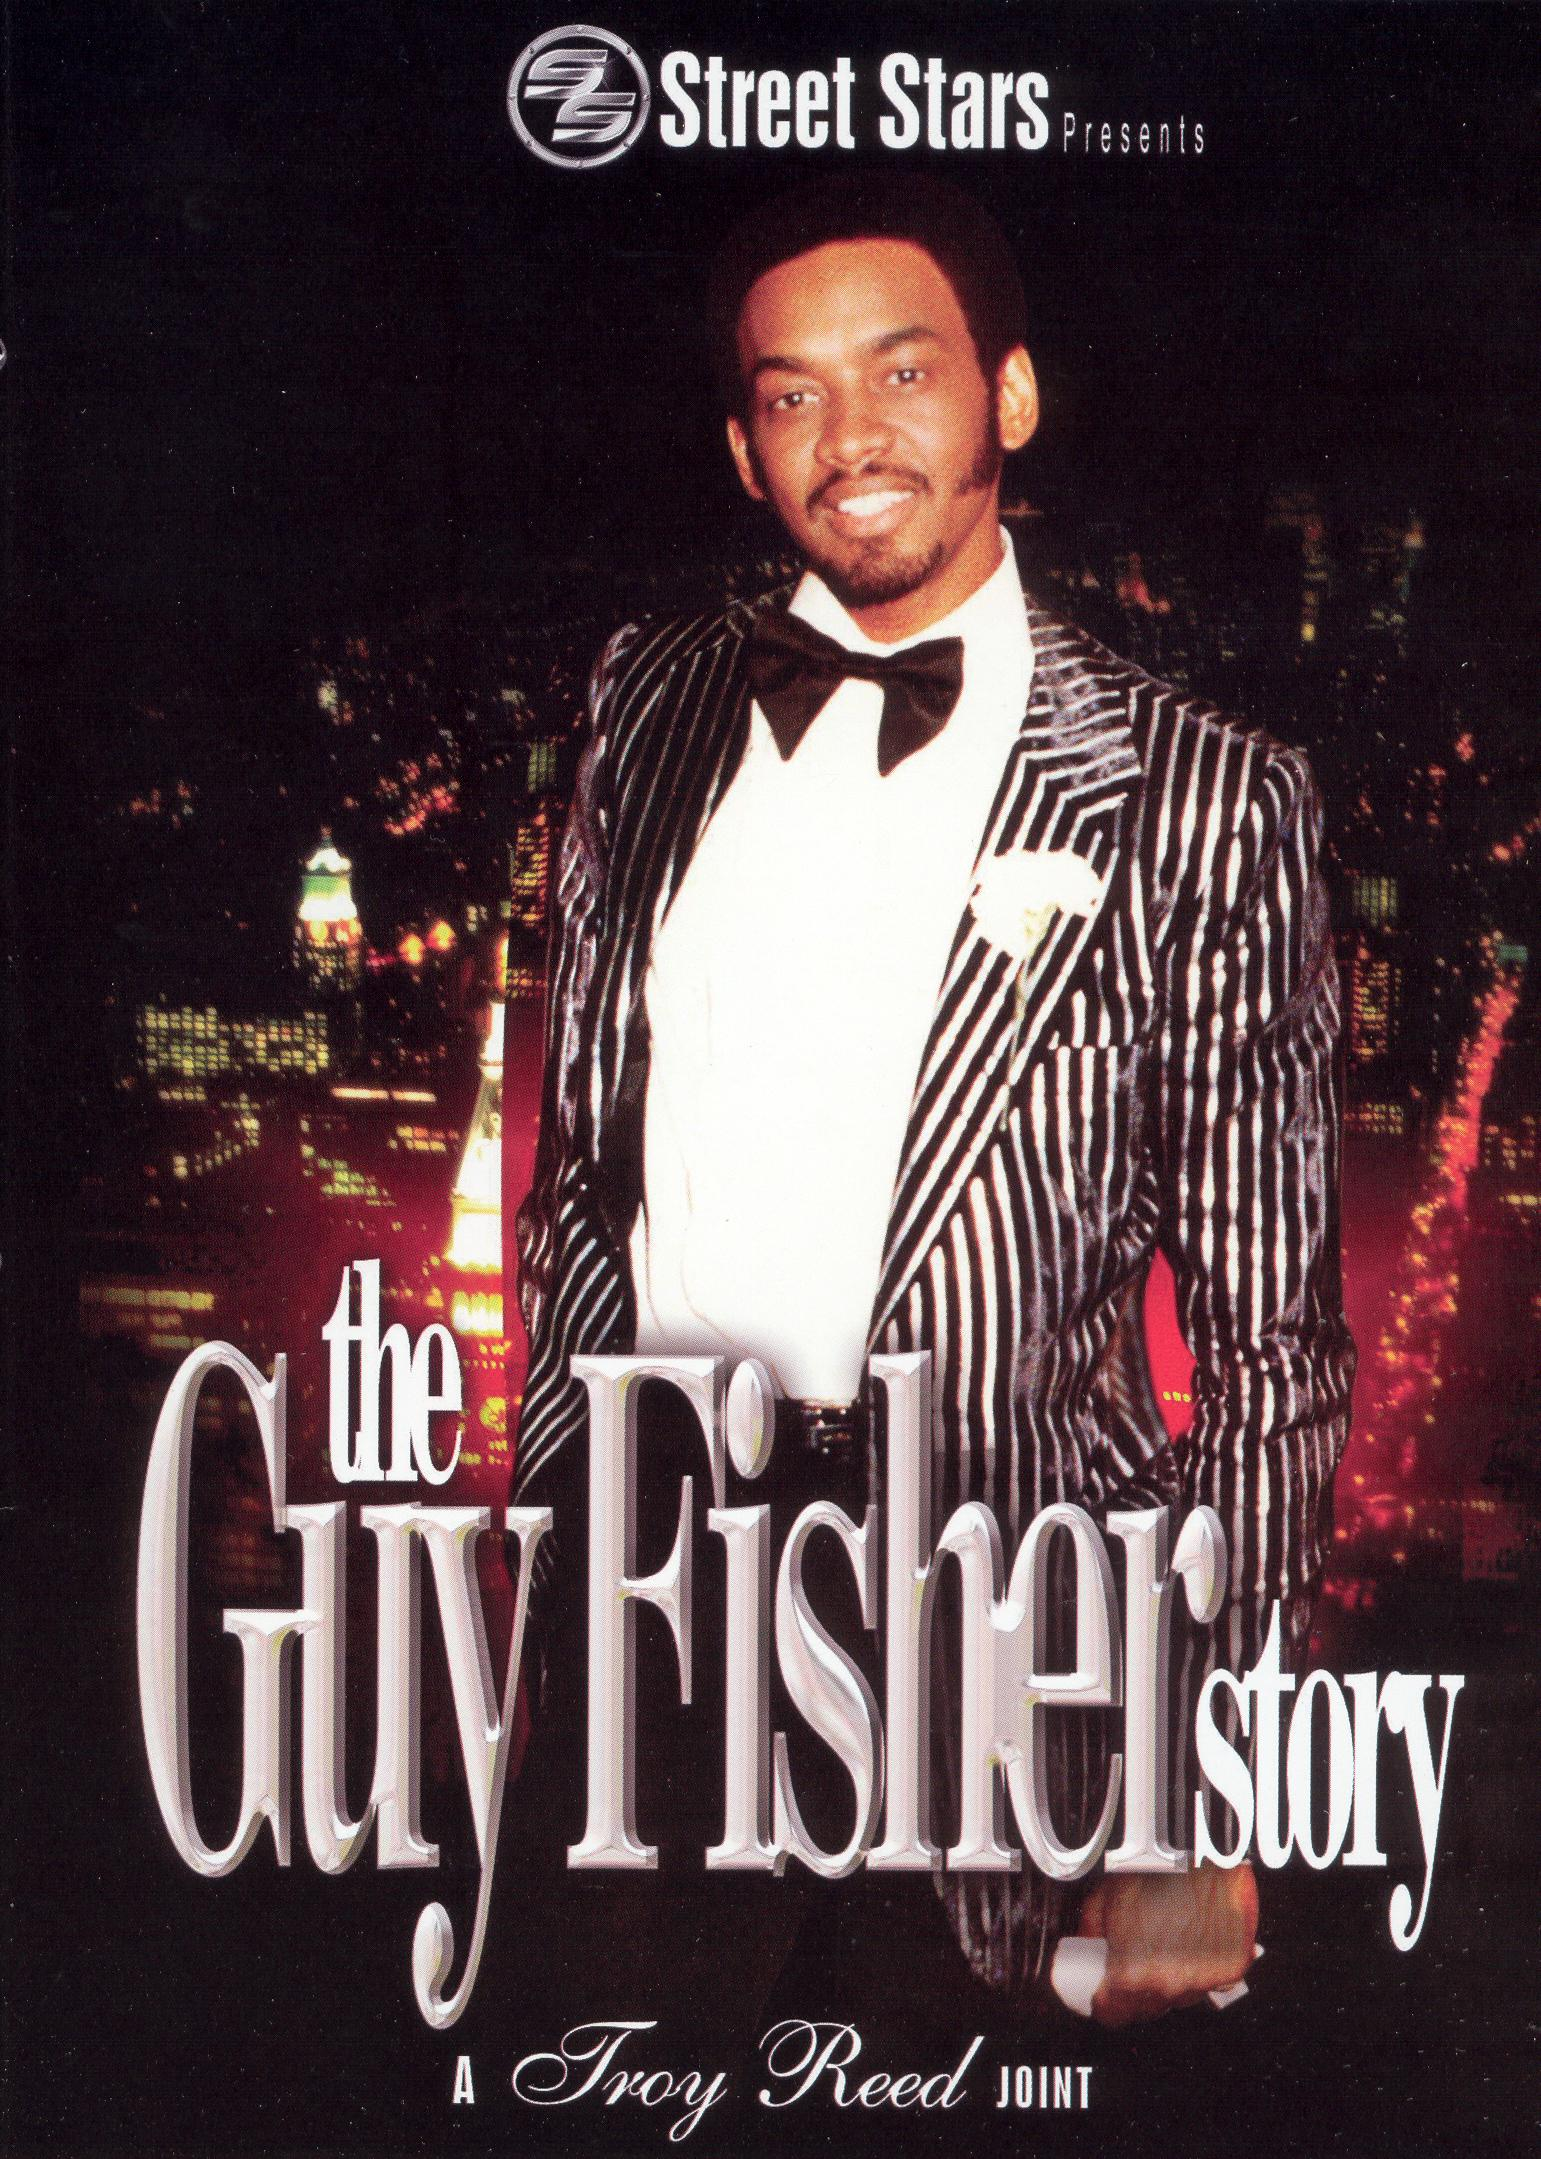 Street Stars: The Guy Fisher Story